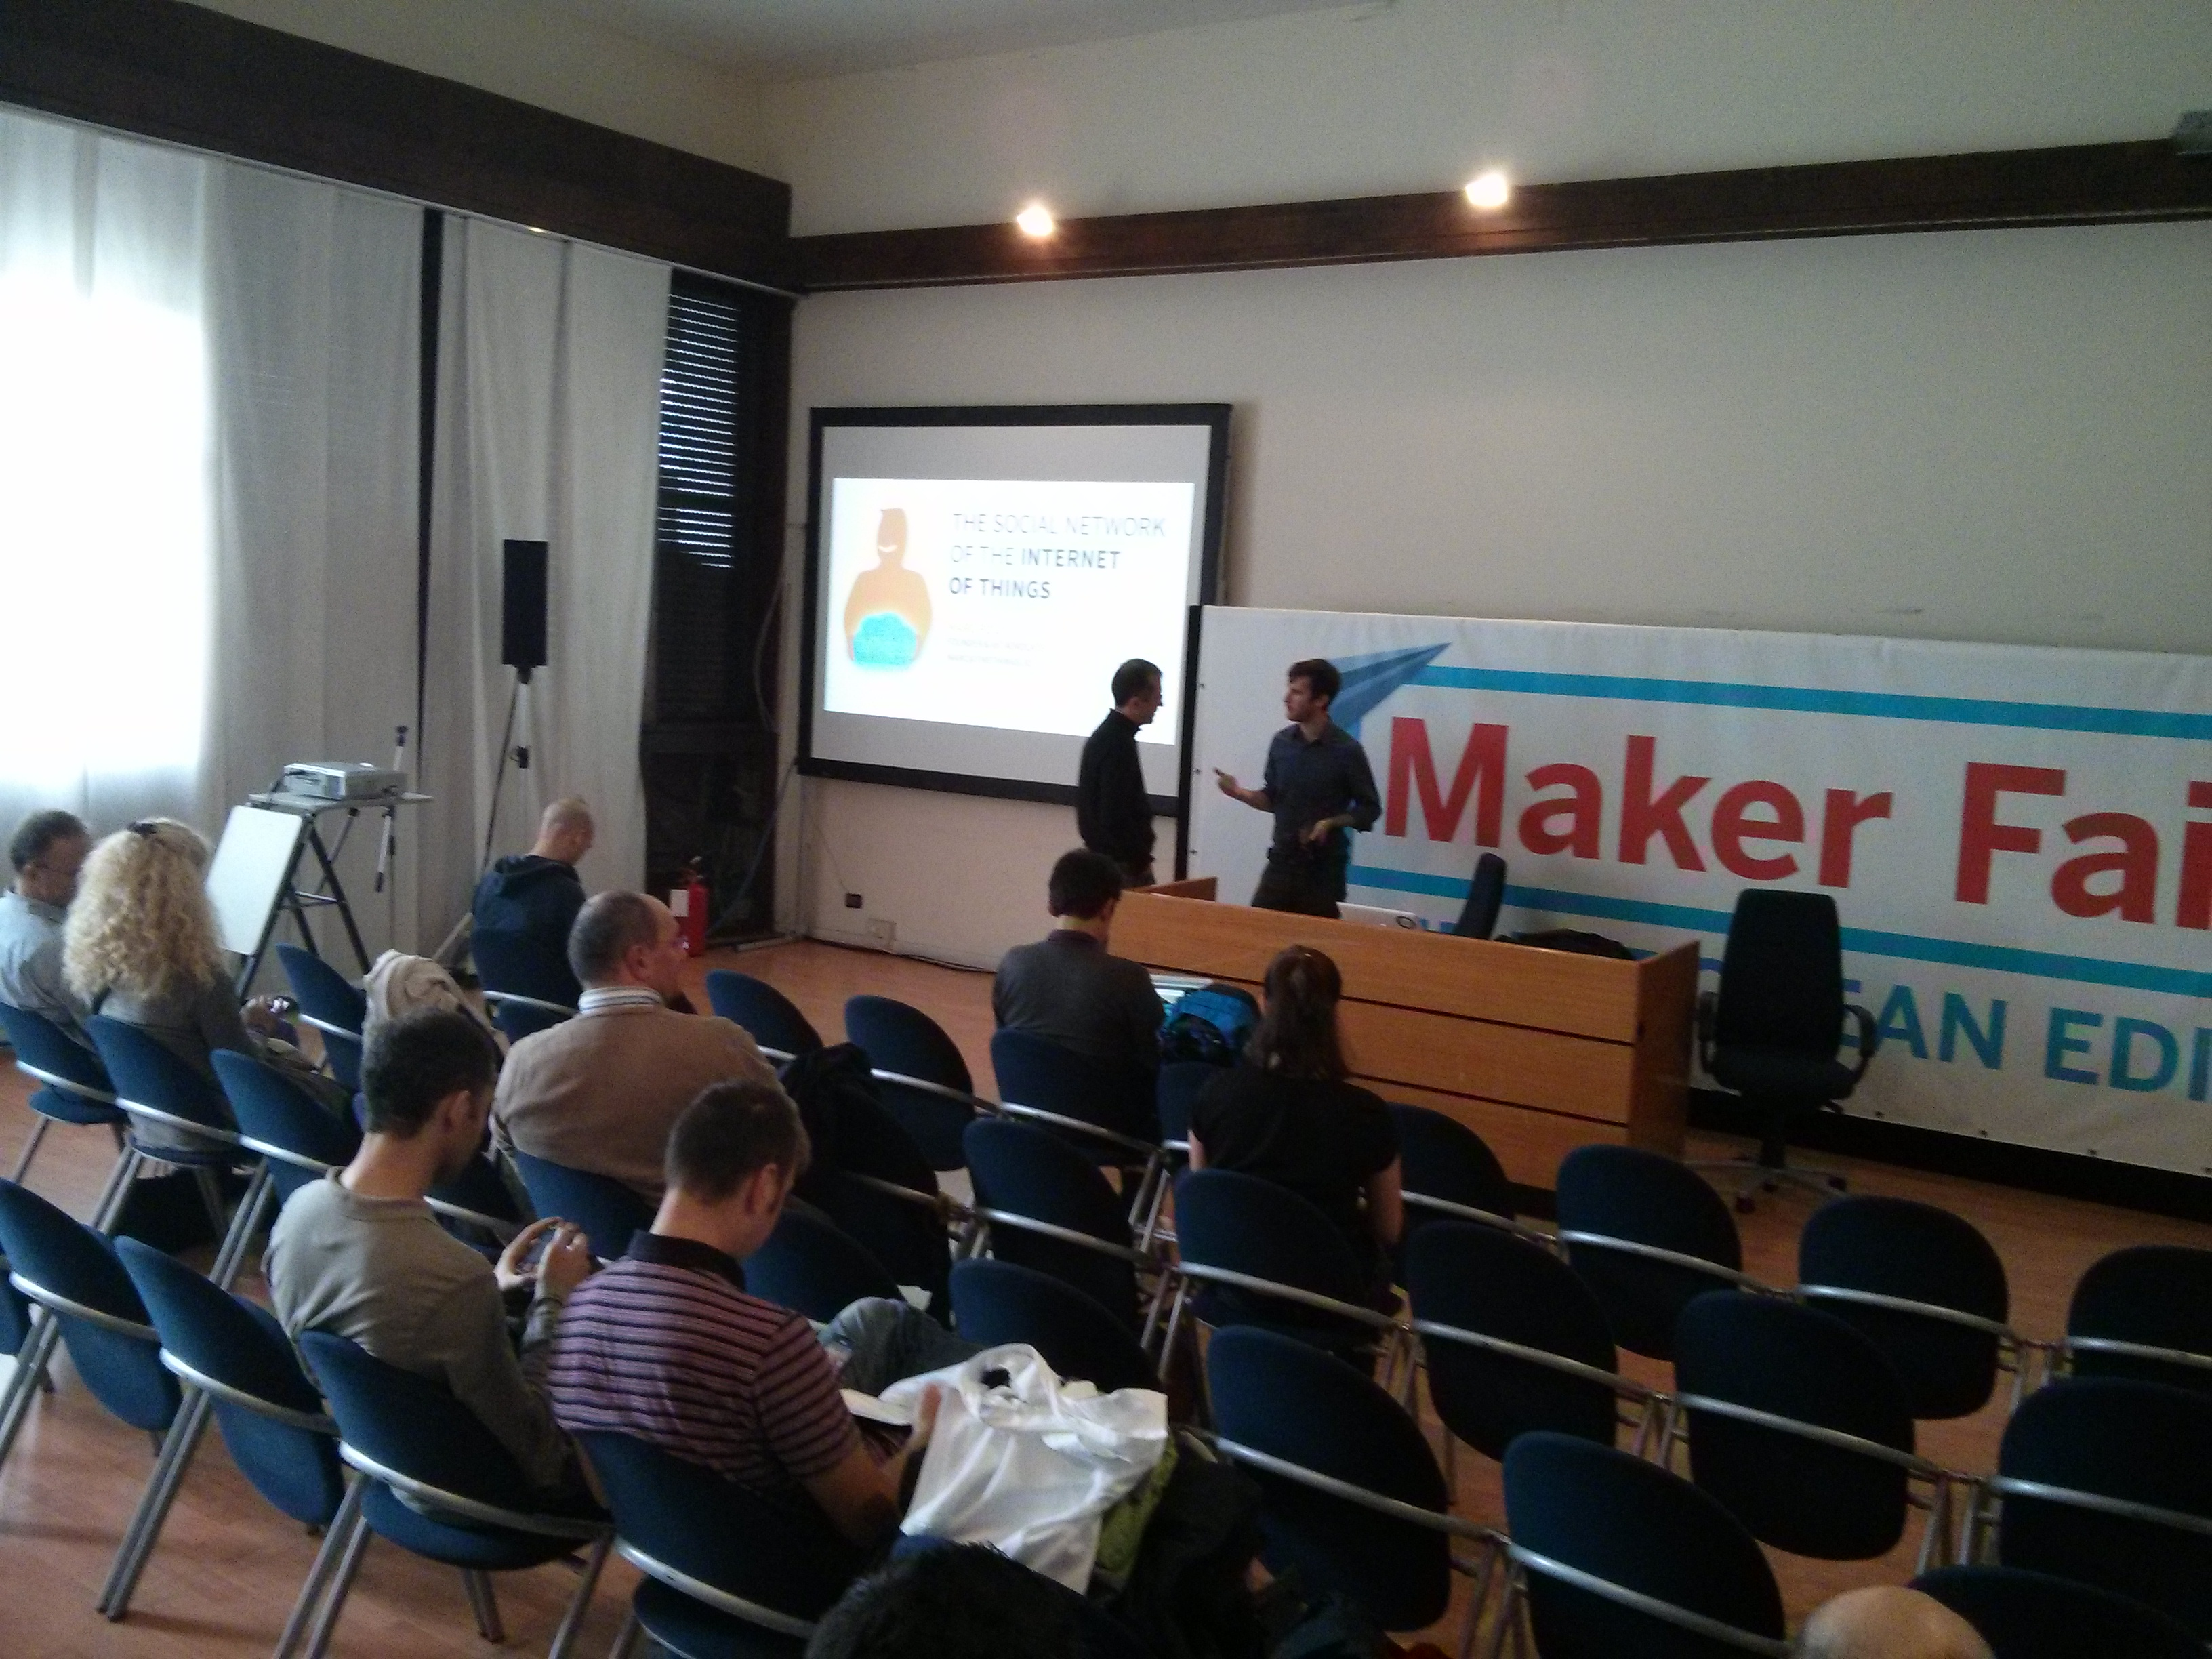 Before the presentation at the Maker Faire